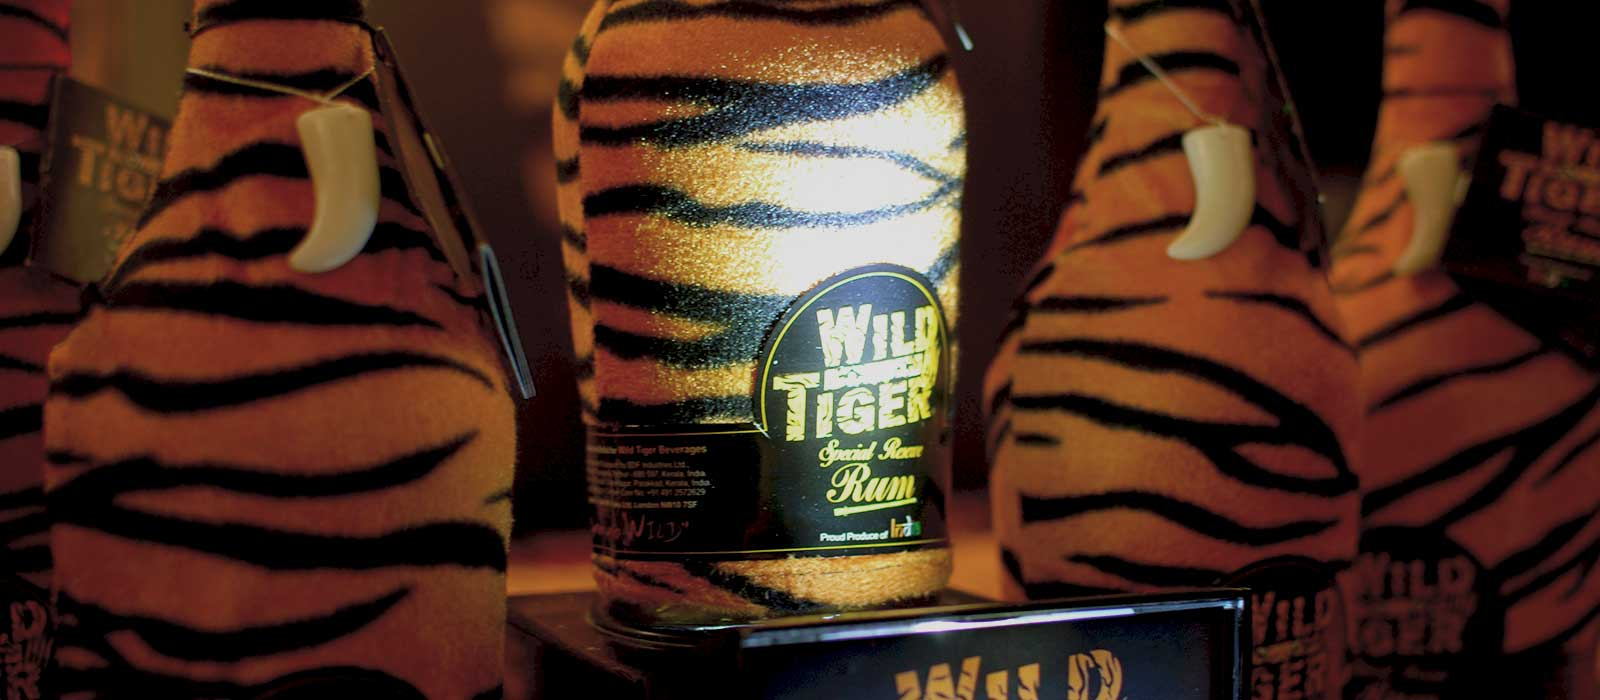 24 Days of Rum 2016: Dag 3 – Wild Tiger Rum